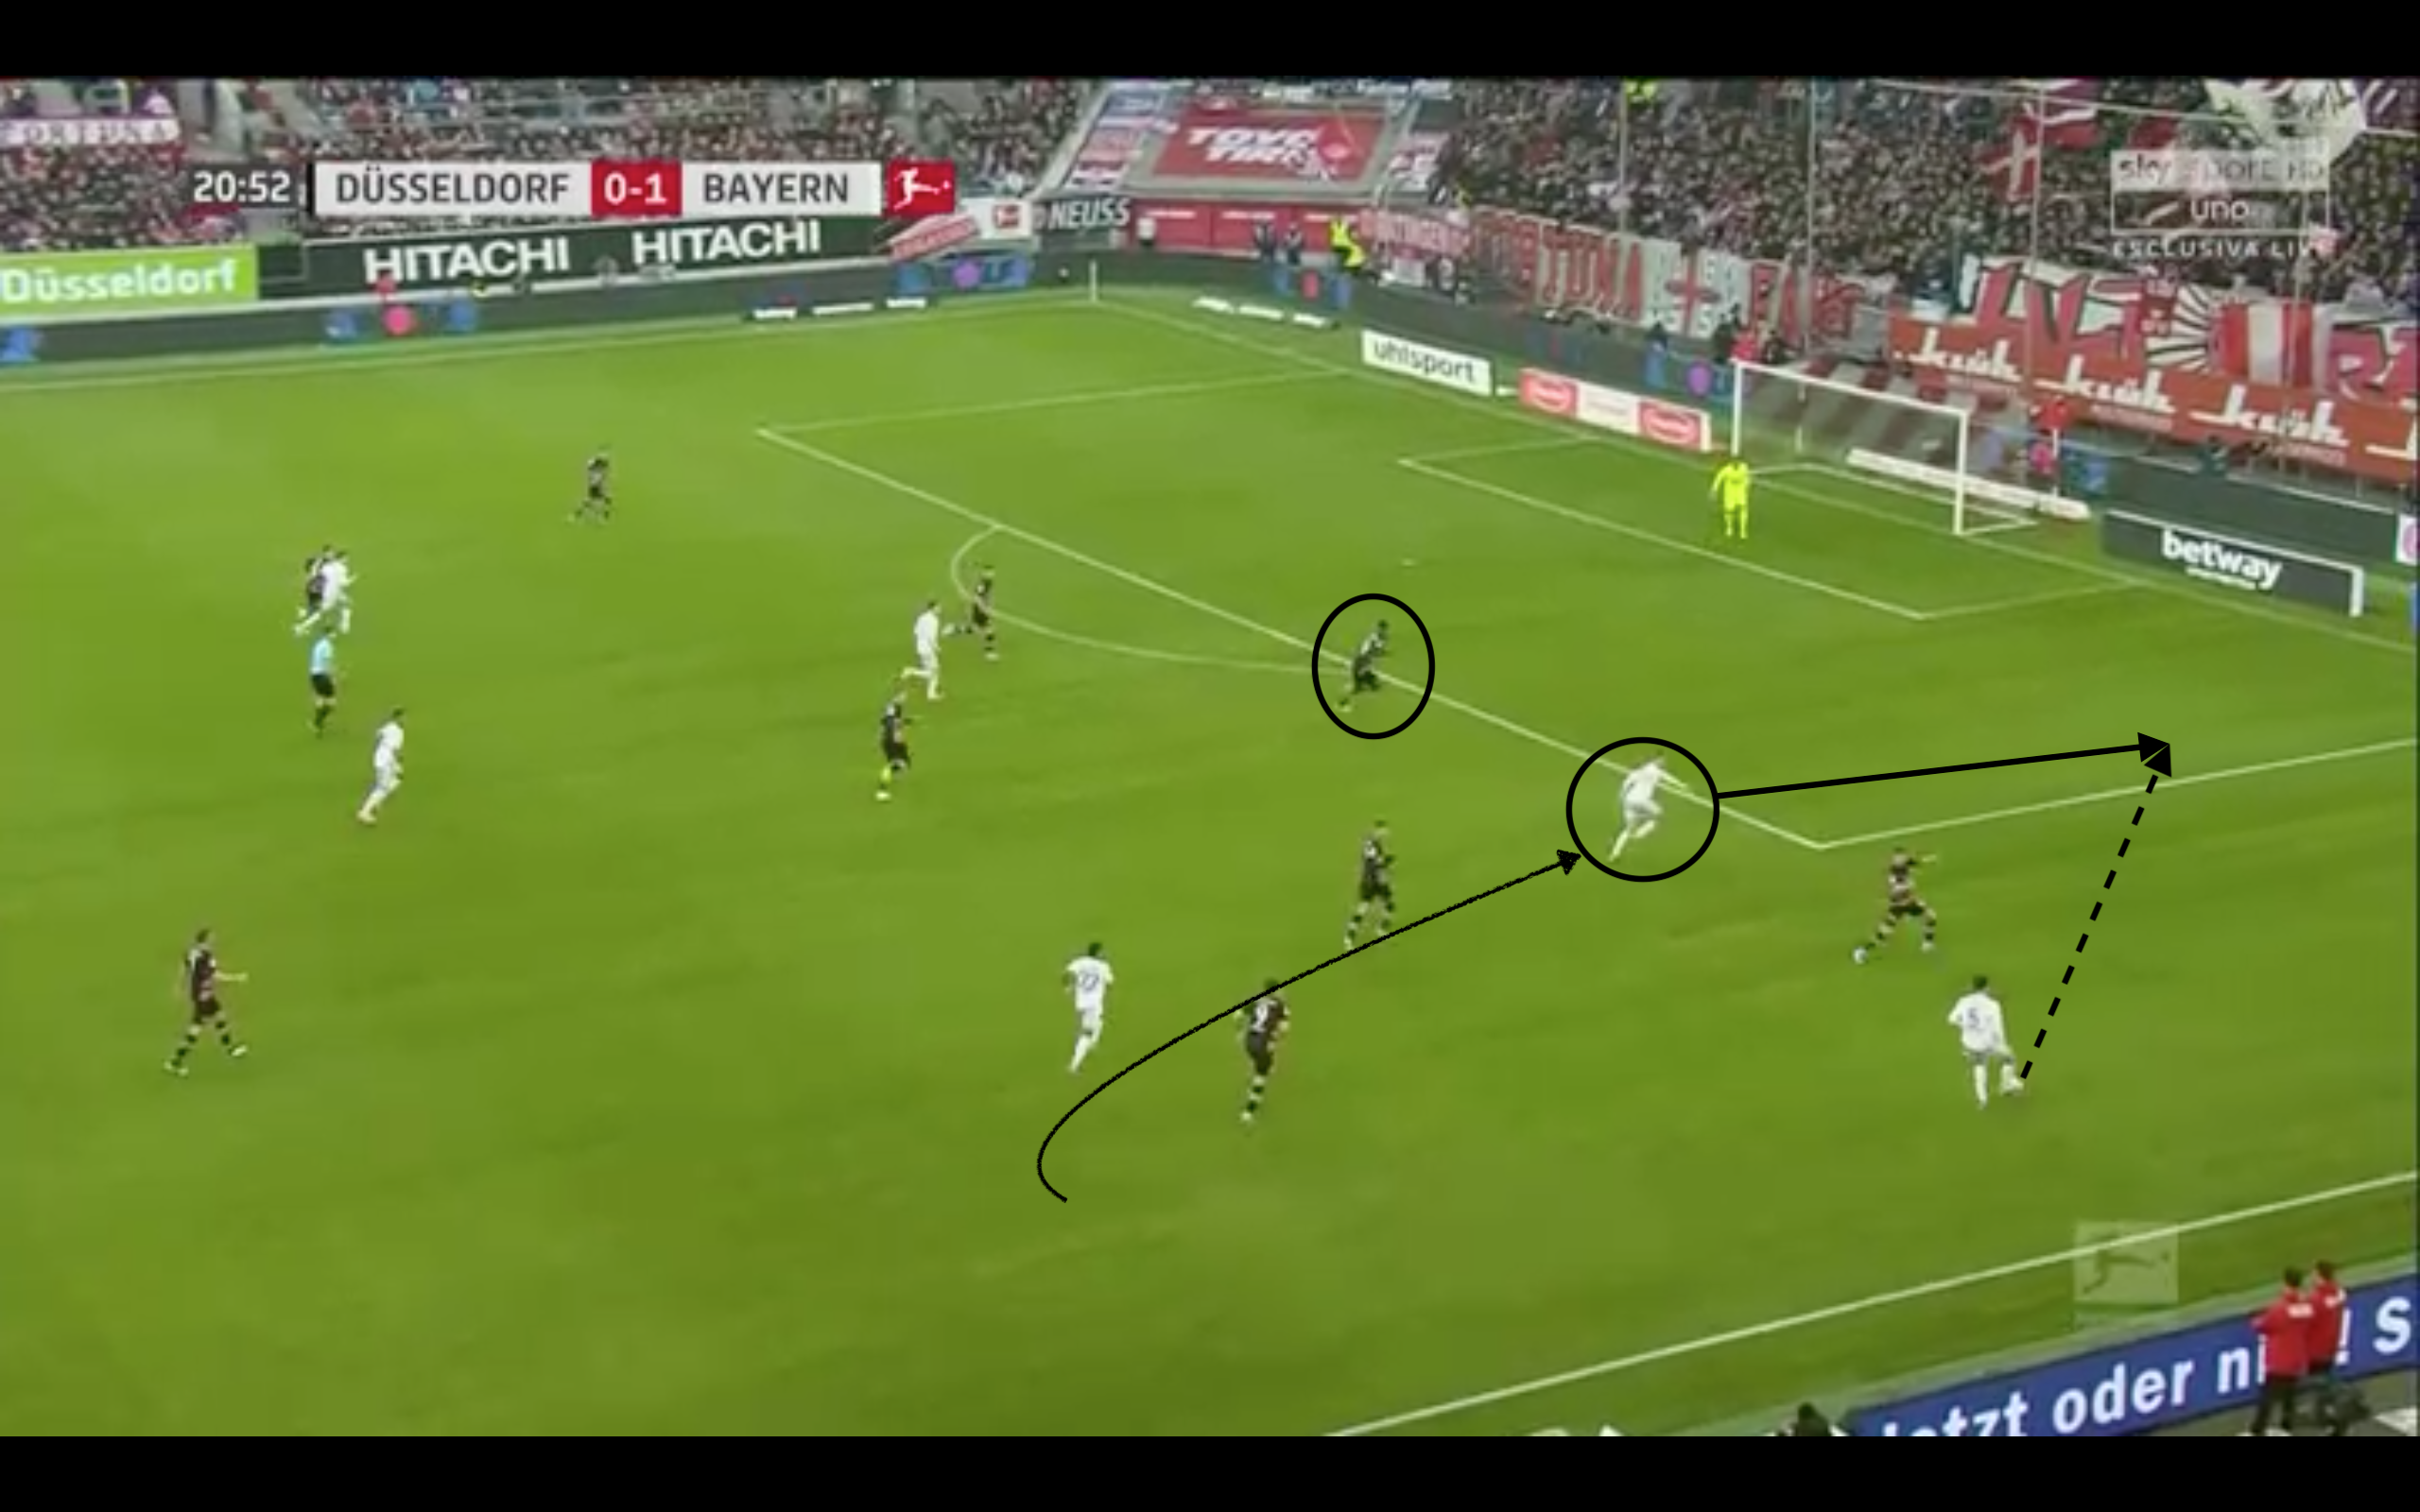 Thomas Müller's resurgence under Hansi Flick tactics